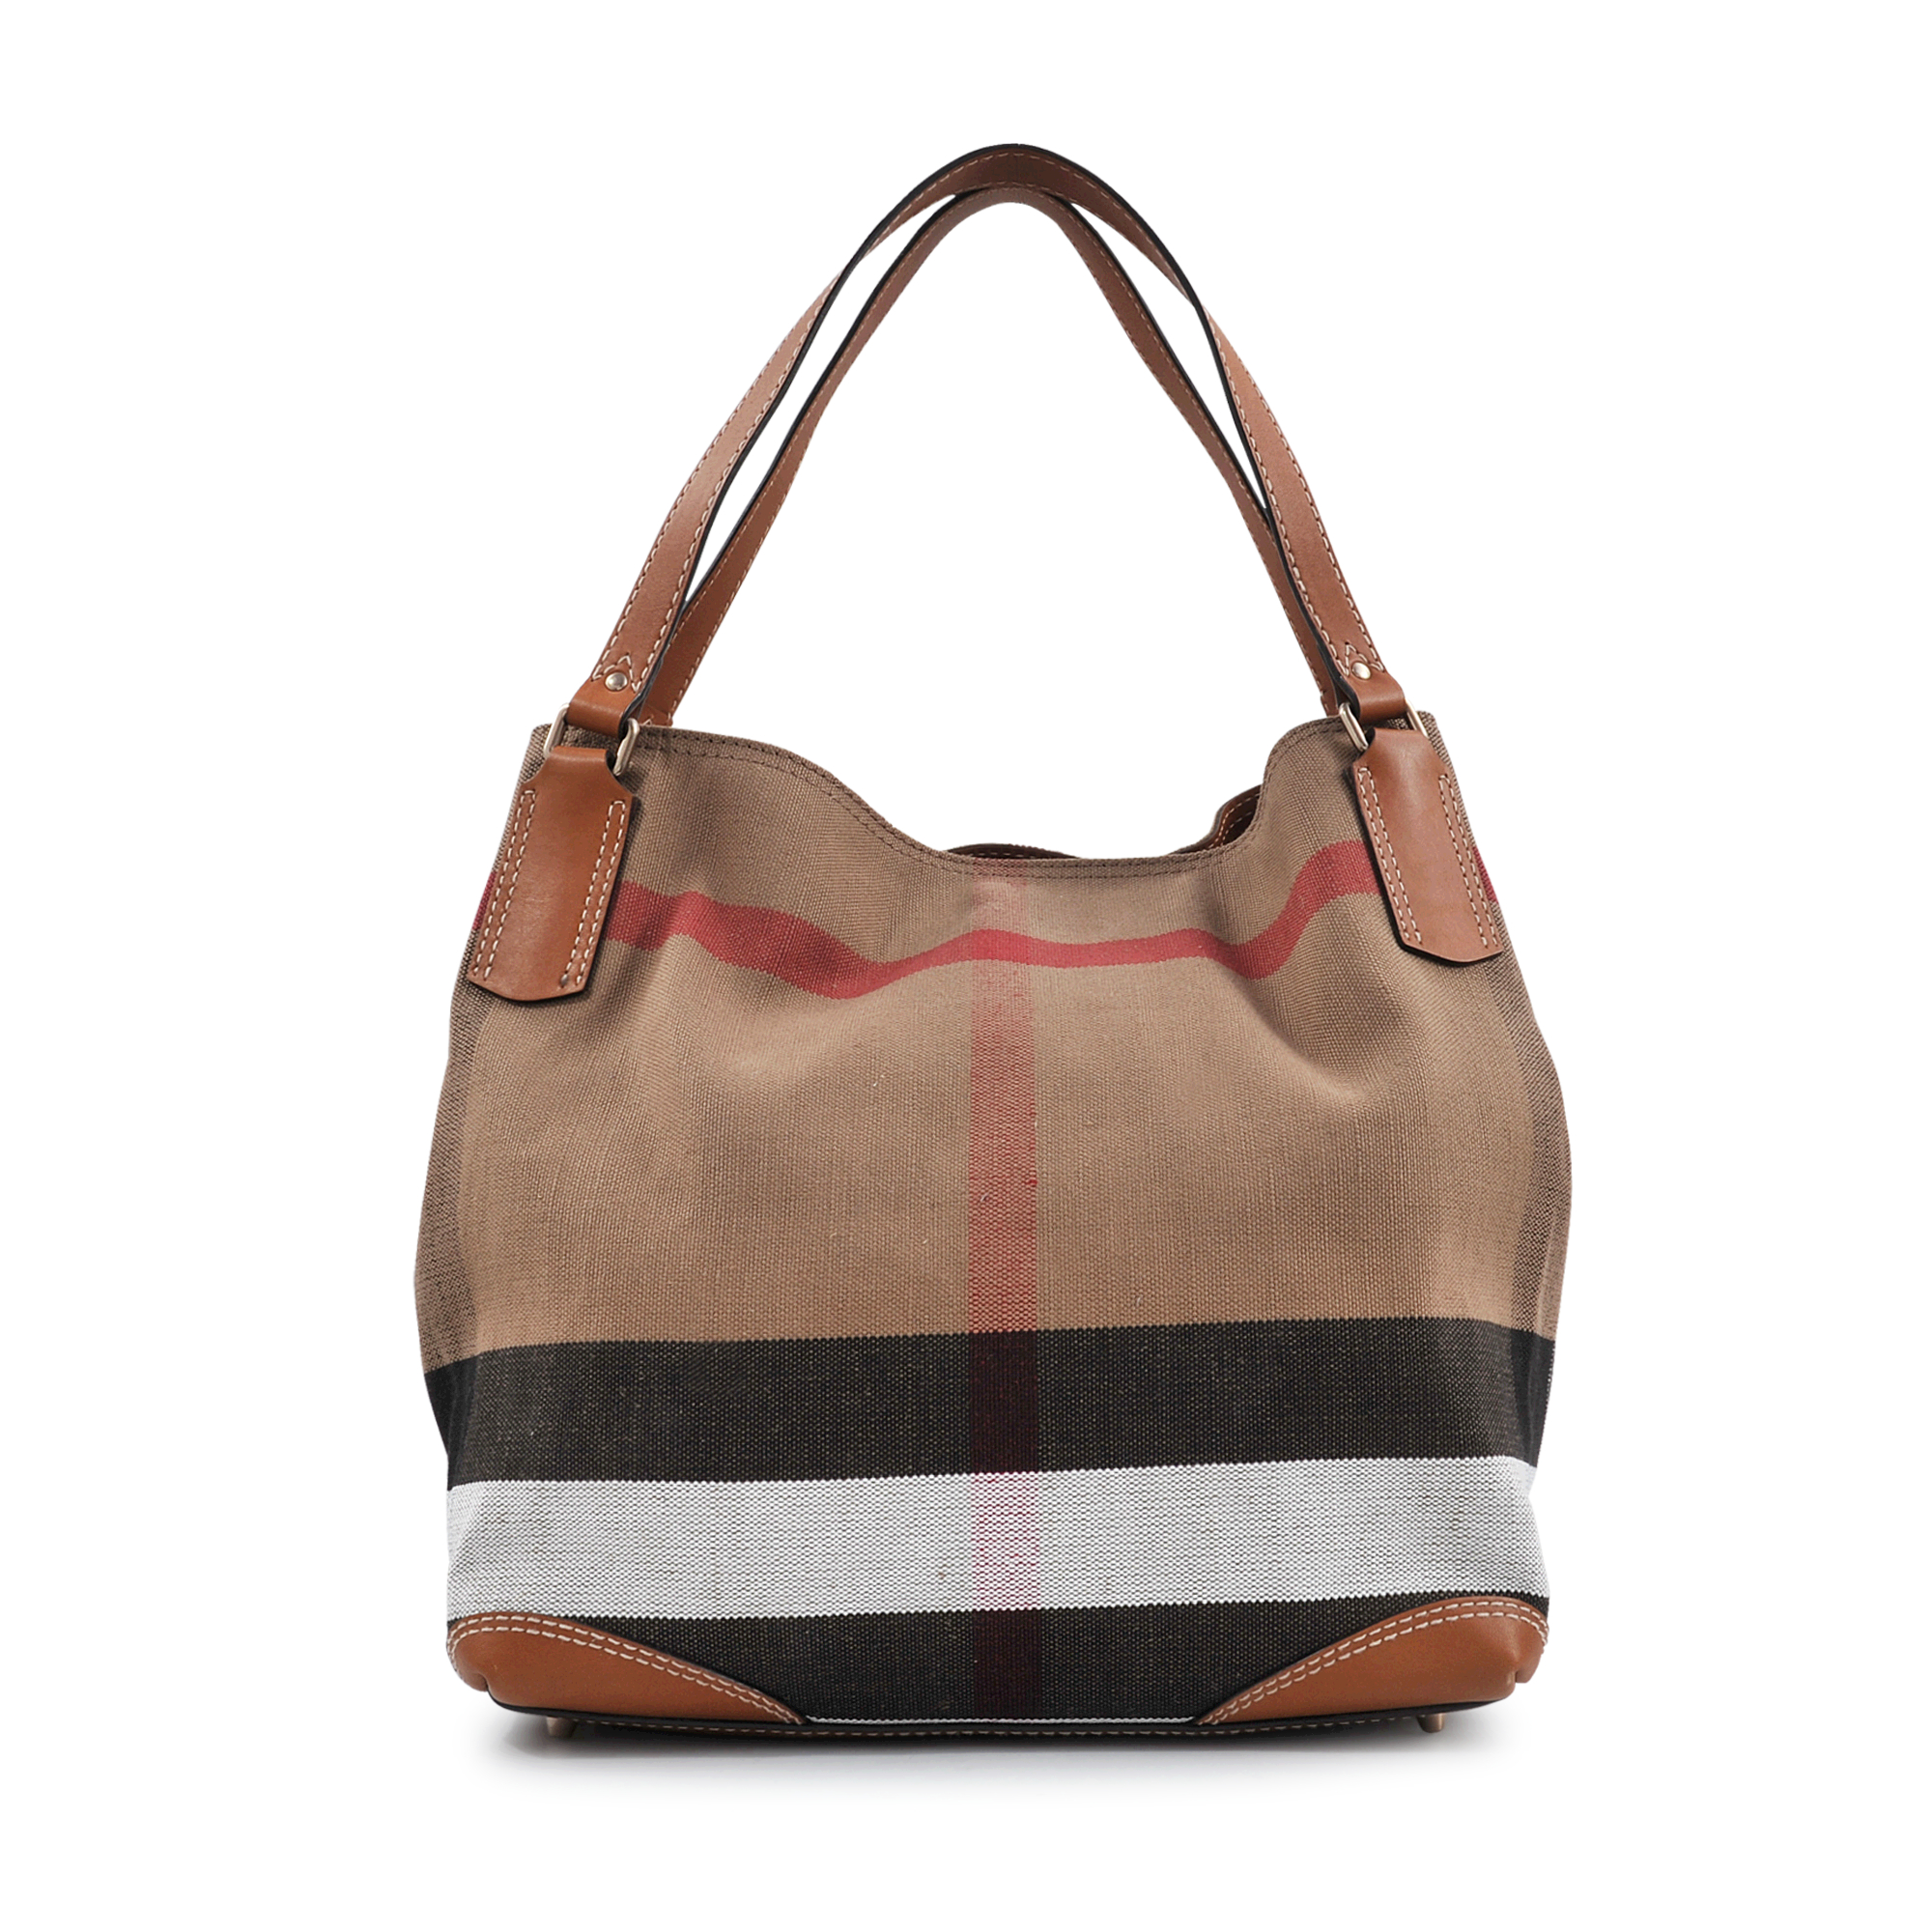 Lyst - Burberry Sm Maidstone Brit Canvas Bag in Brown 87905472fe